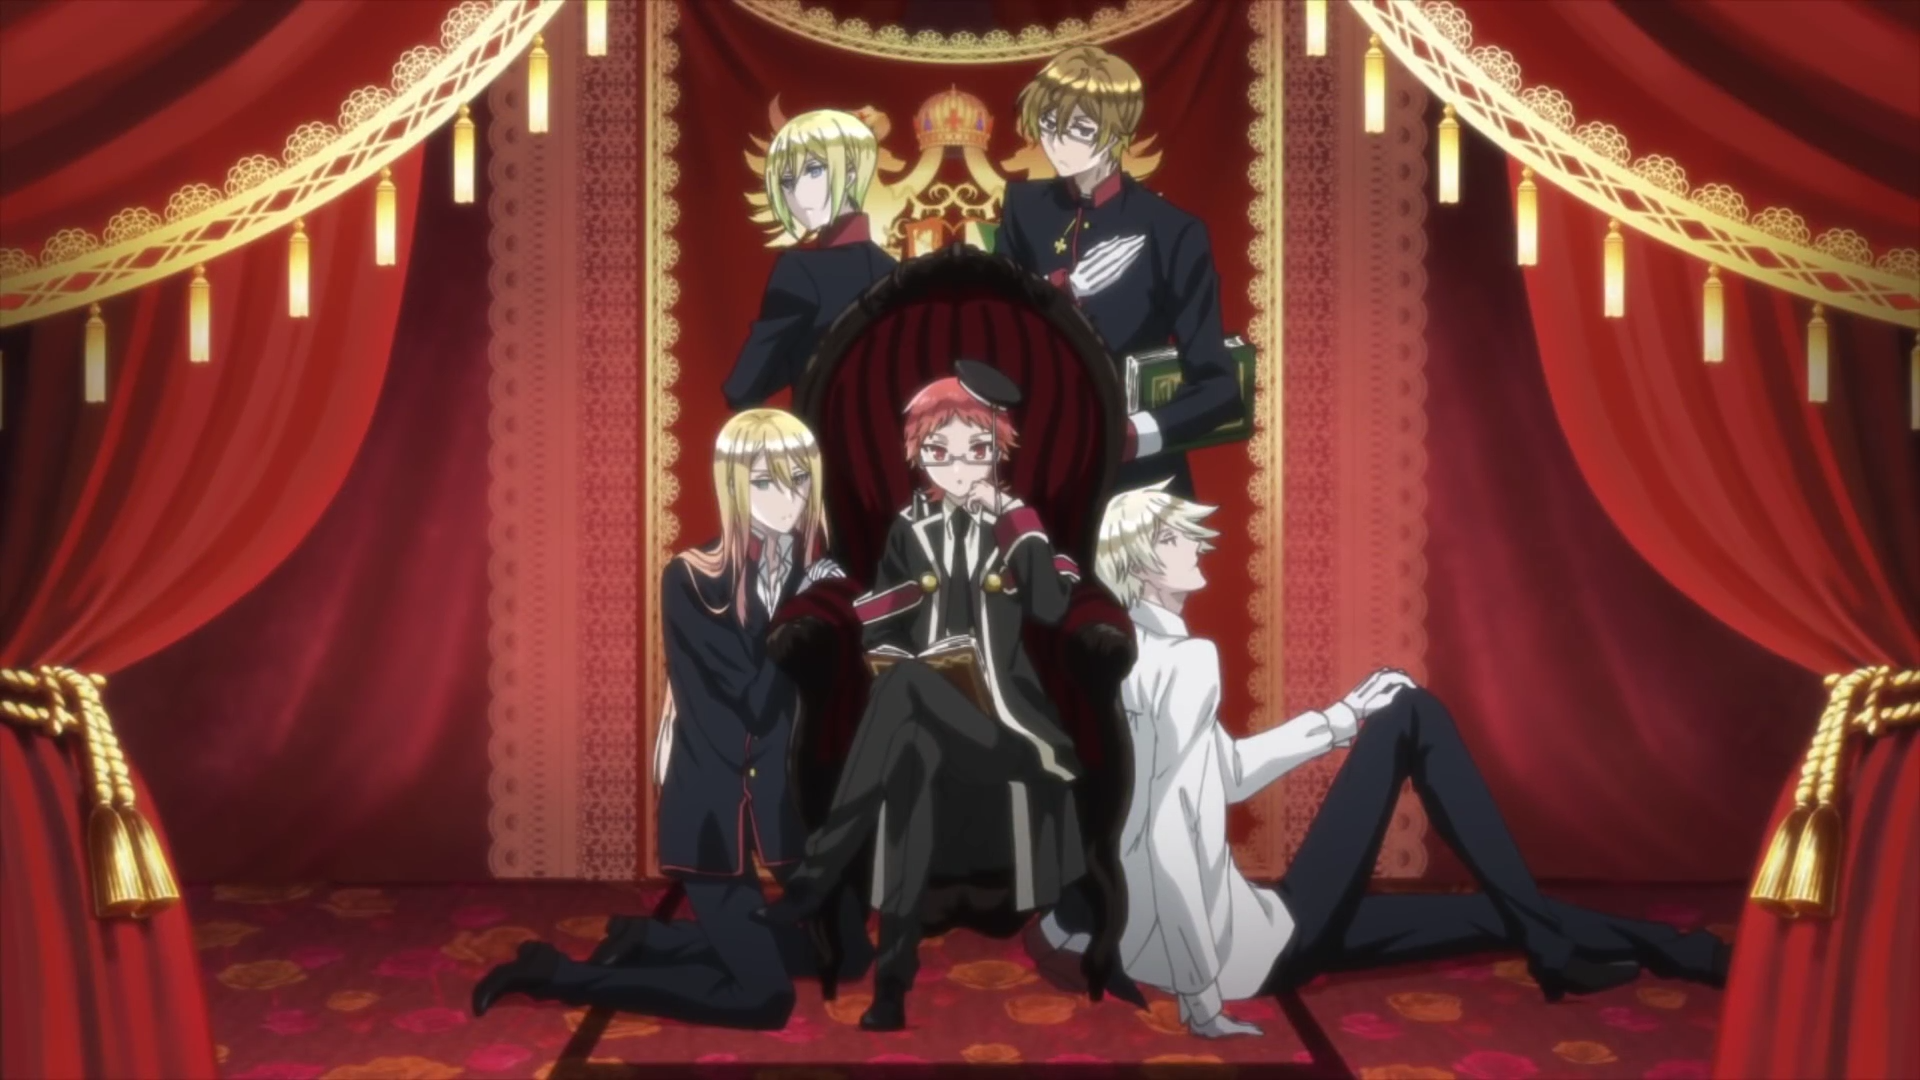 The Royal Tutor